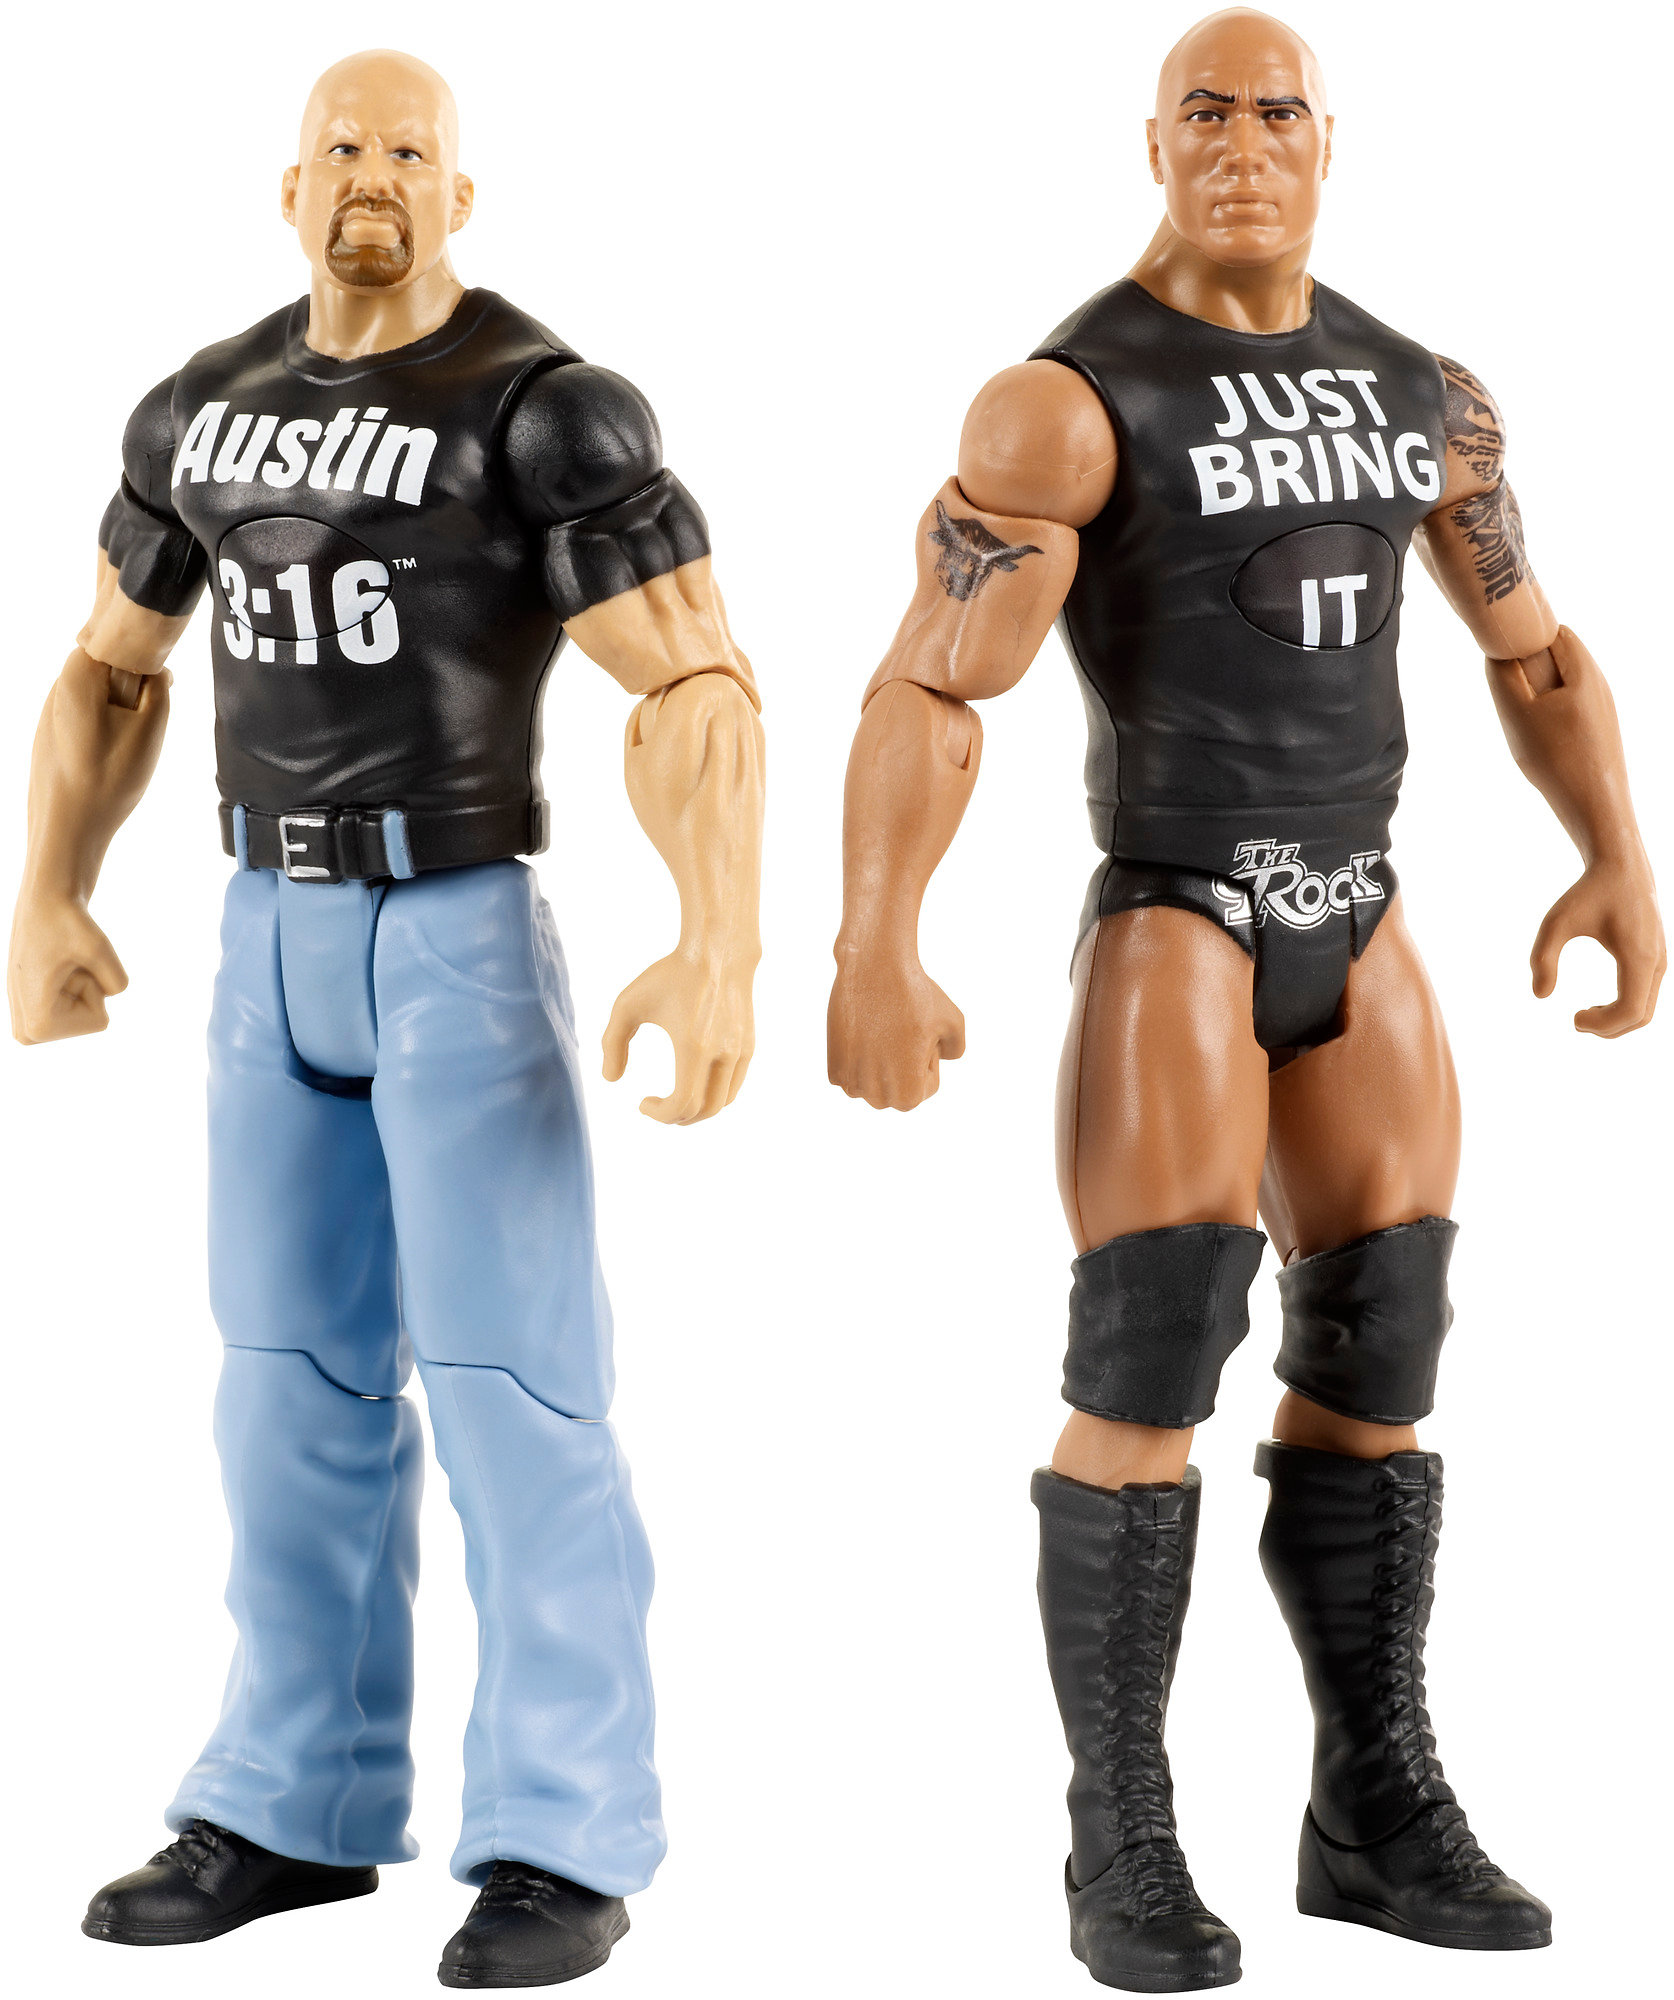 WWE Tough Talkers The Rock & Steve Austin Innovation Figures 2-Pack by Mattel